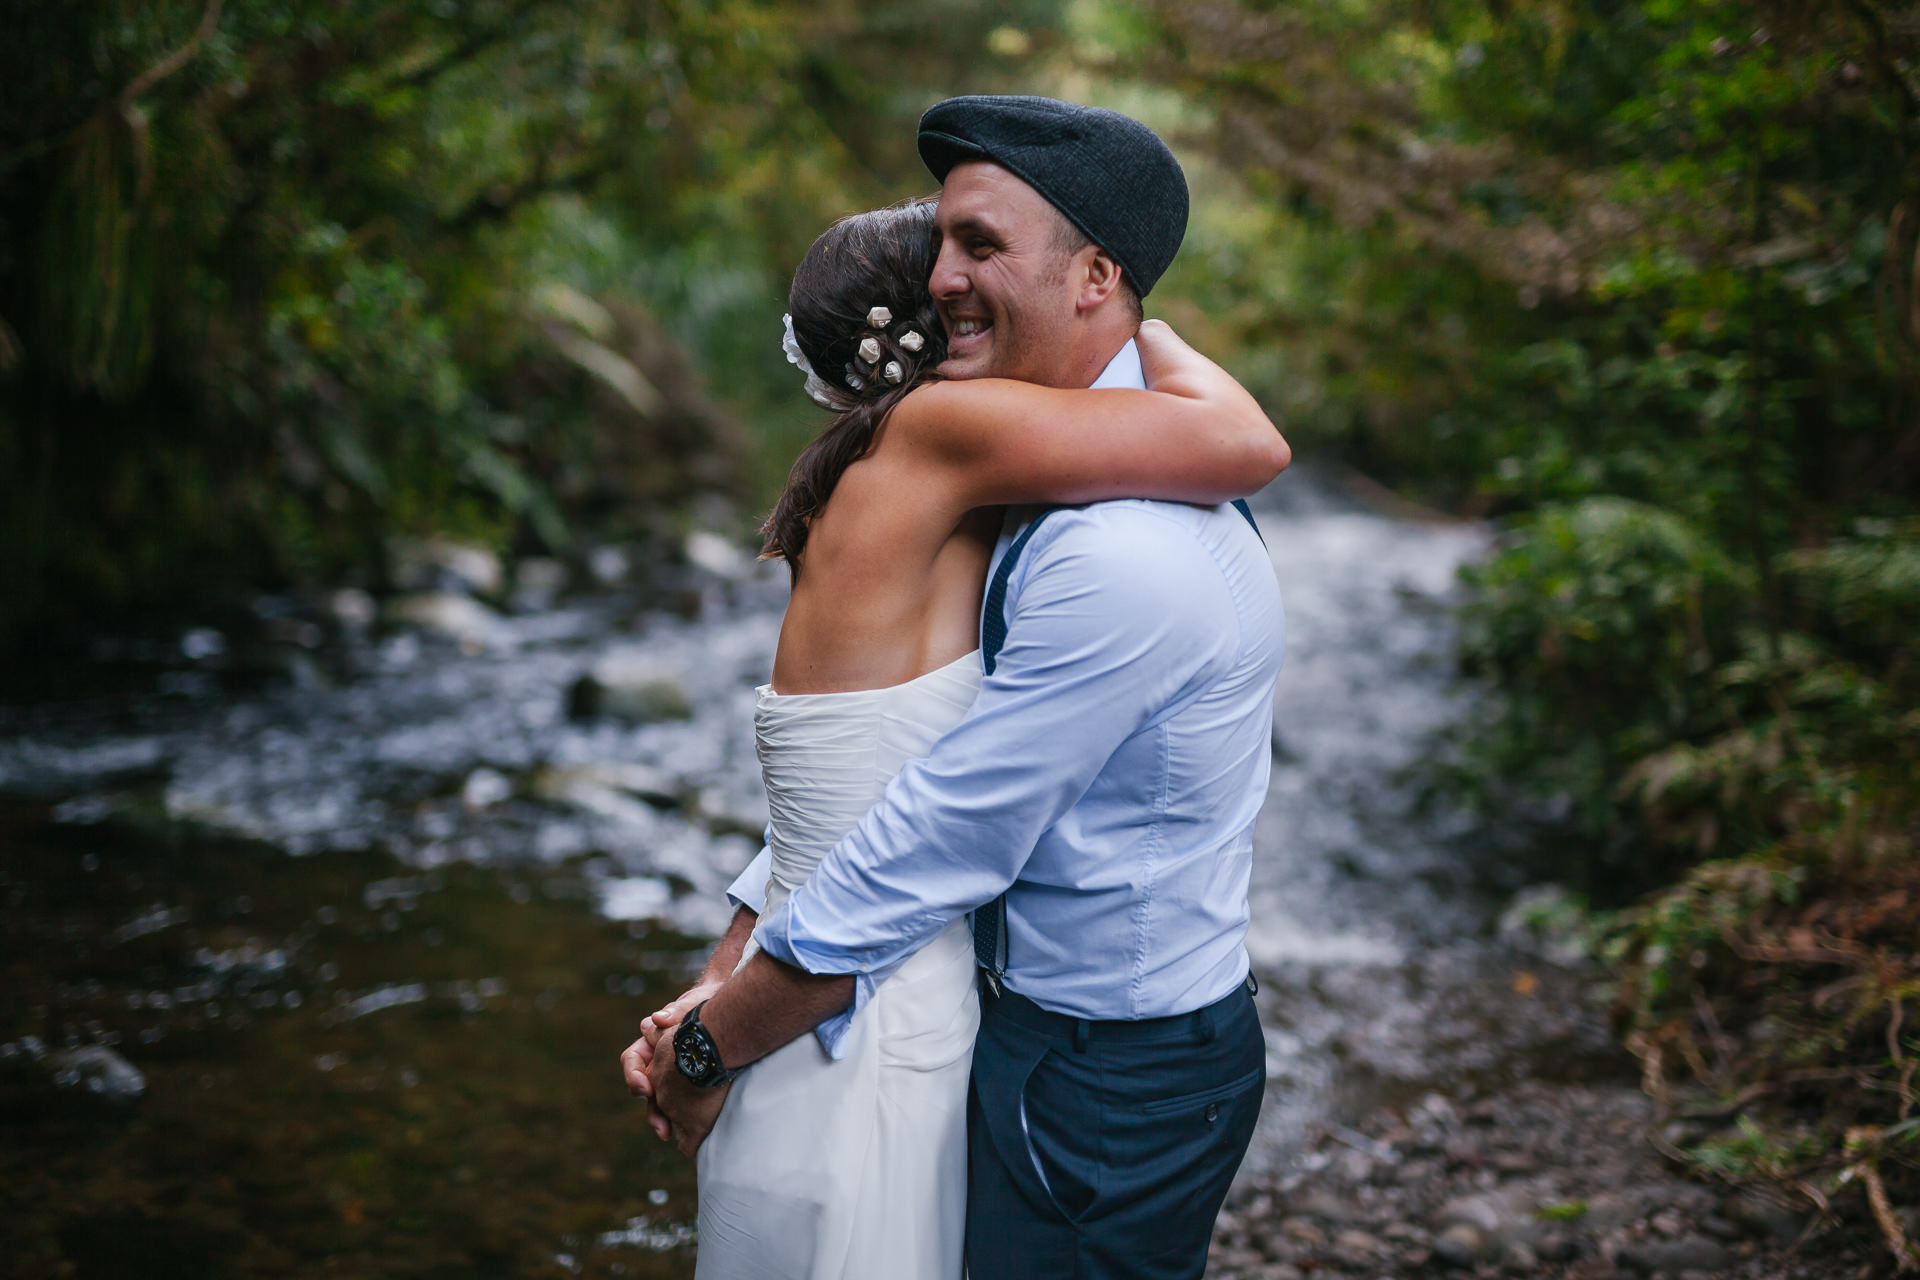 The_Official_Photographers_shannon-Noel-Pirongia-forest-park-wedding_MG_1053